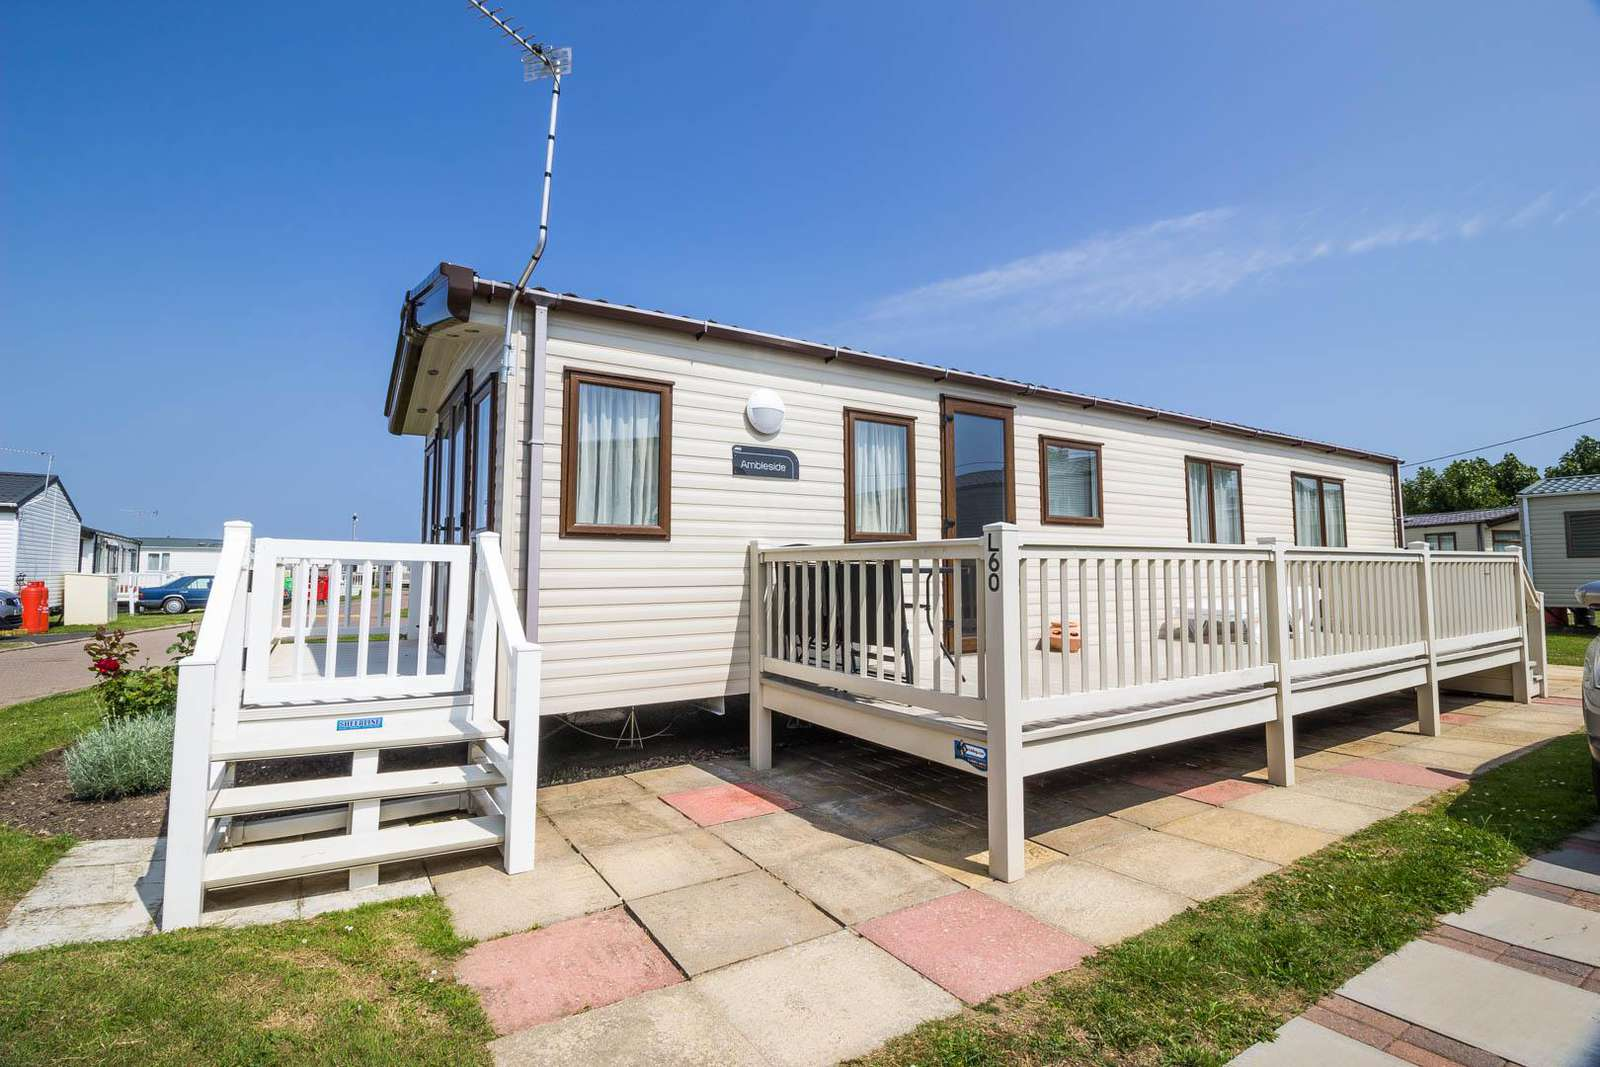 50060L – Lapwing area, 2 bed, 6 berth caravan with decking, D/G & C/H. Diamond-Plus rated. - property